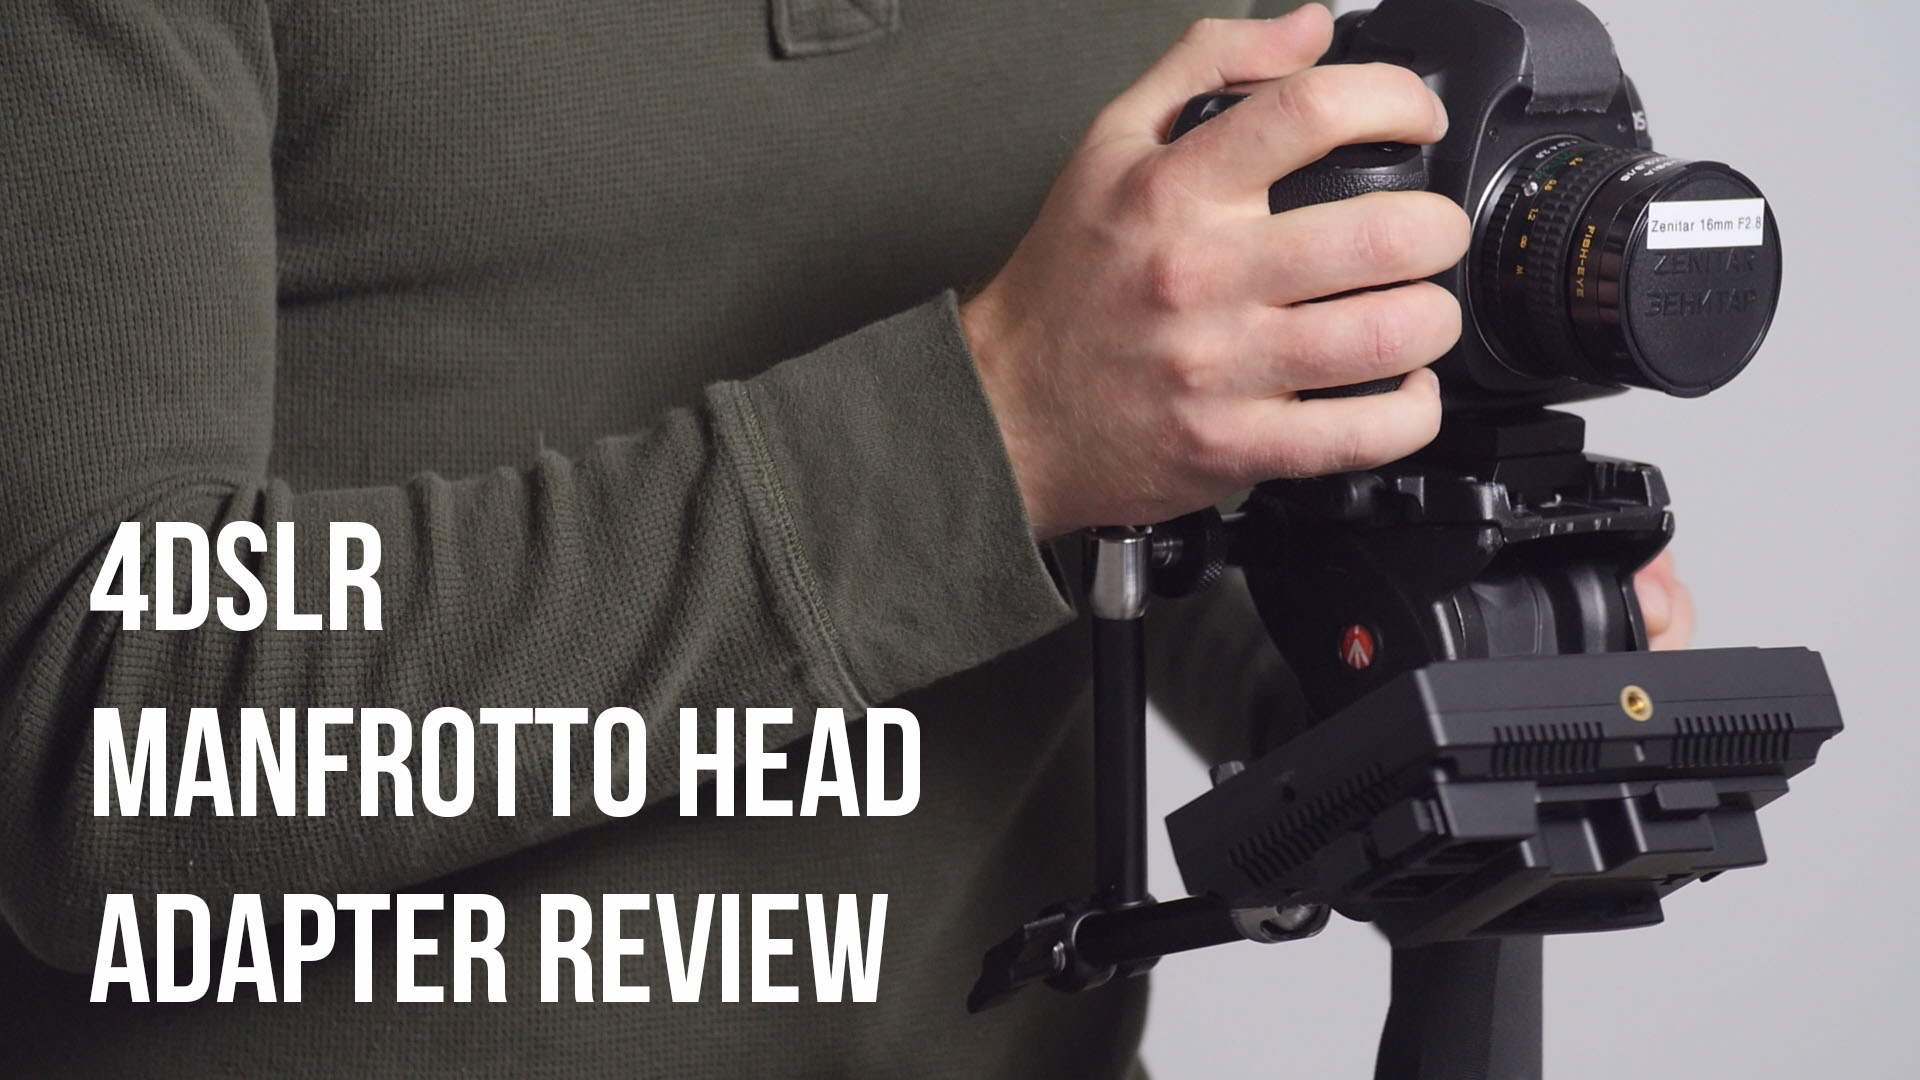 Get the Most Out of Your Tripod with the 4DSLR Tripod Stud